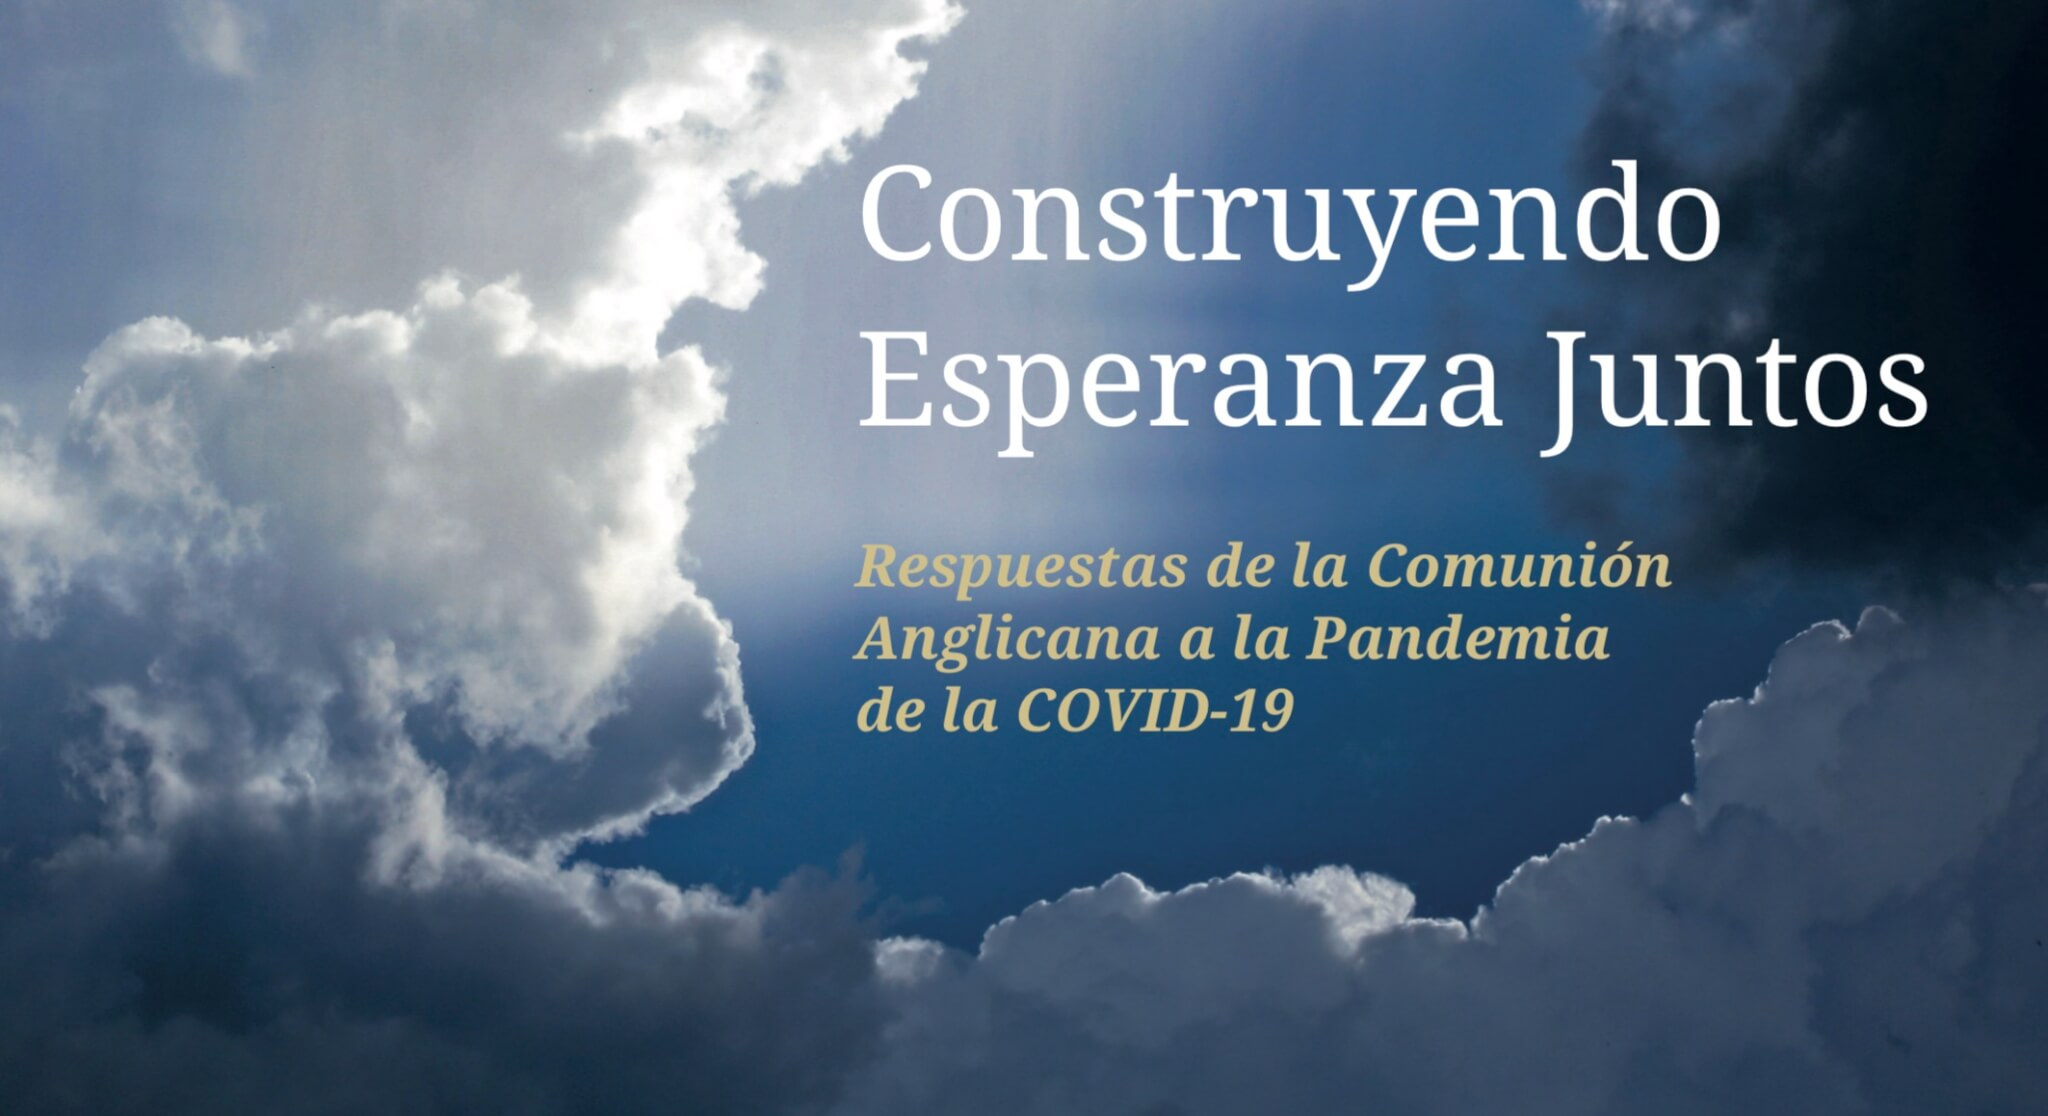 Spanish covid report image